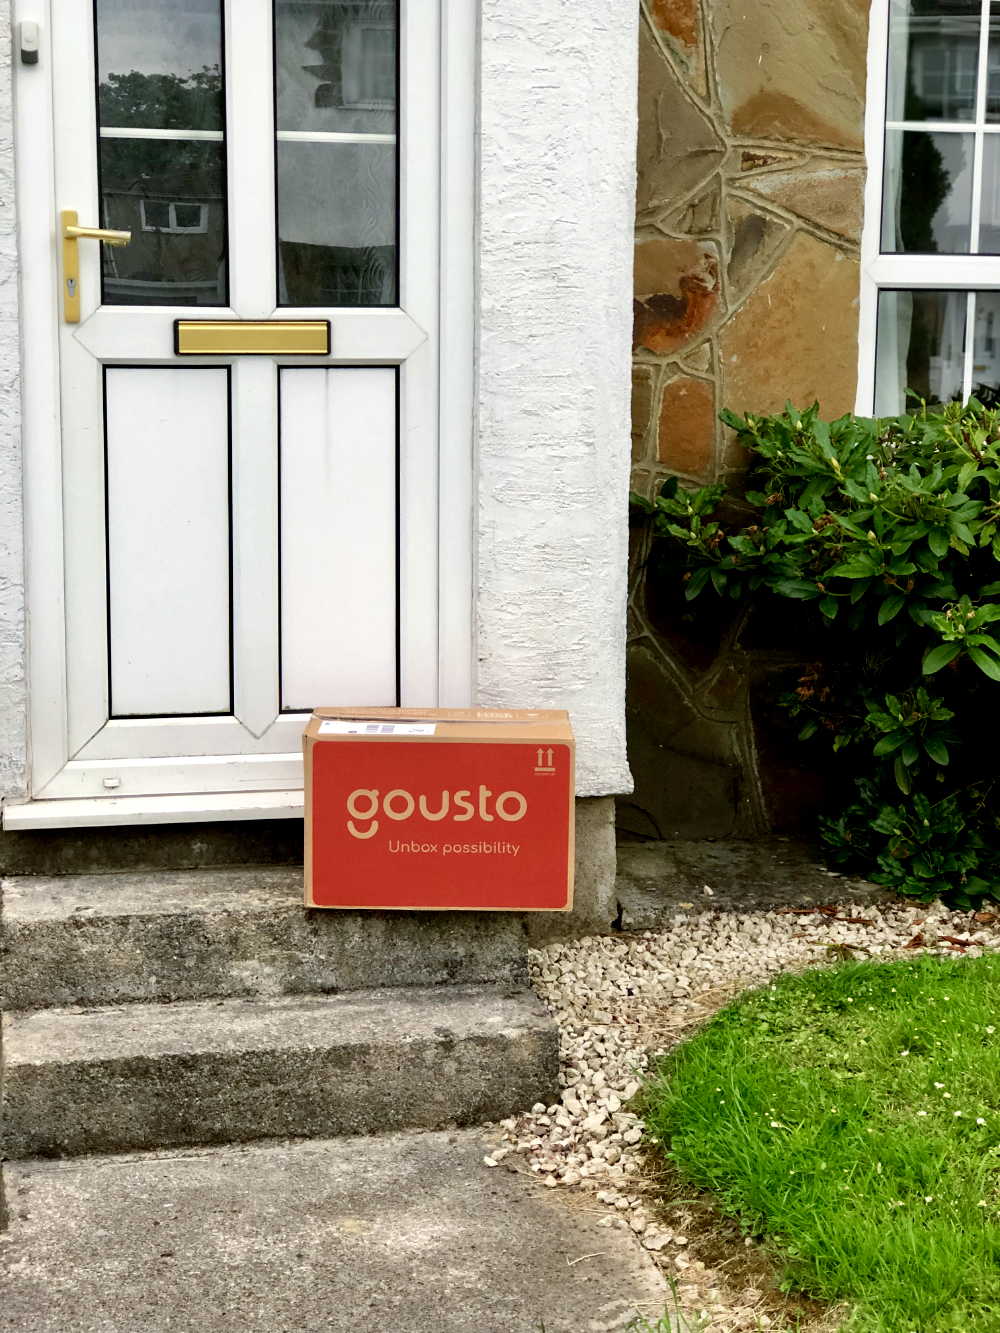 Gousto box, fresh food, recipe ideas, easy cooking, home-made food, sustainability, discount code, fresh ingredients, family meal ideas, global kitchen, burgers, curry, orzo, money off, first impressions, review, money saving